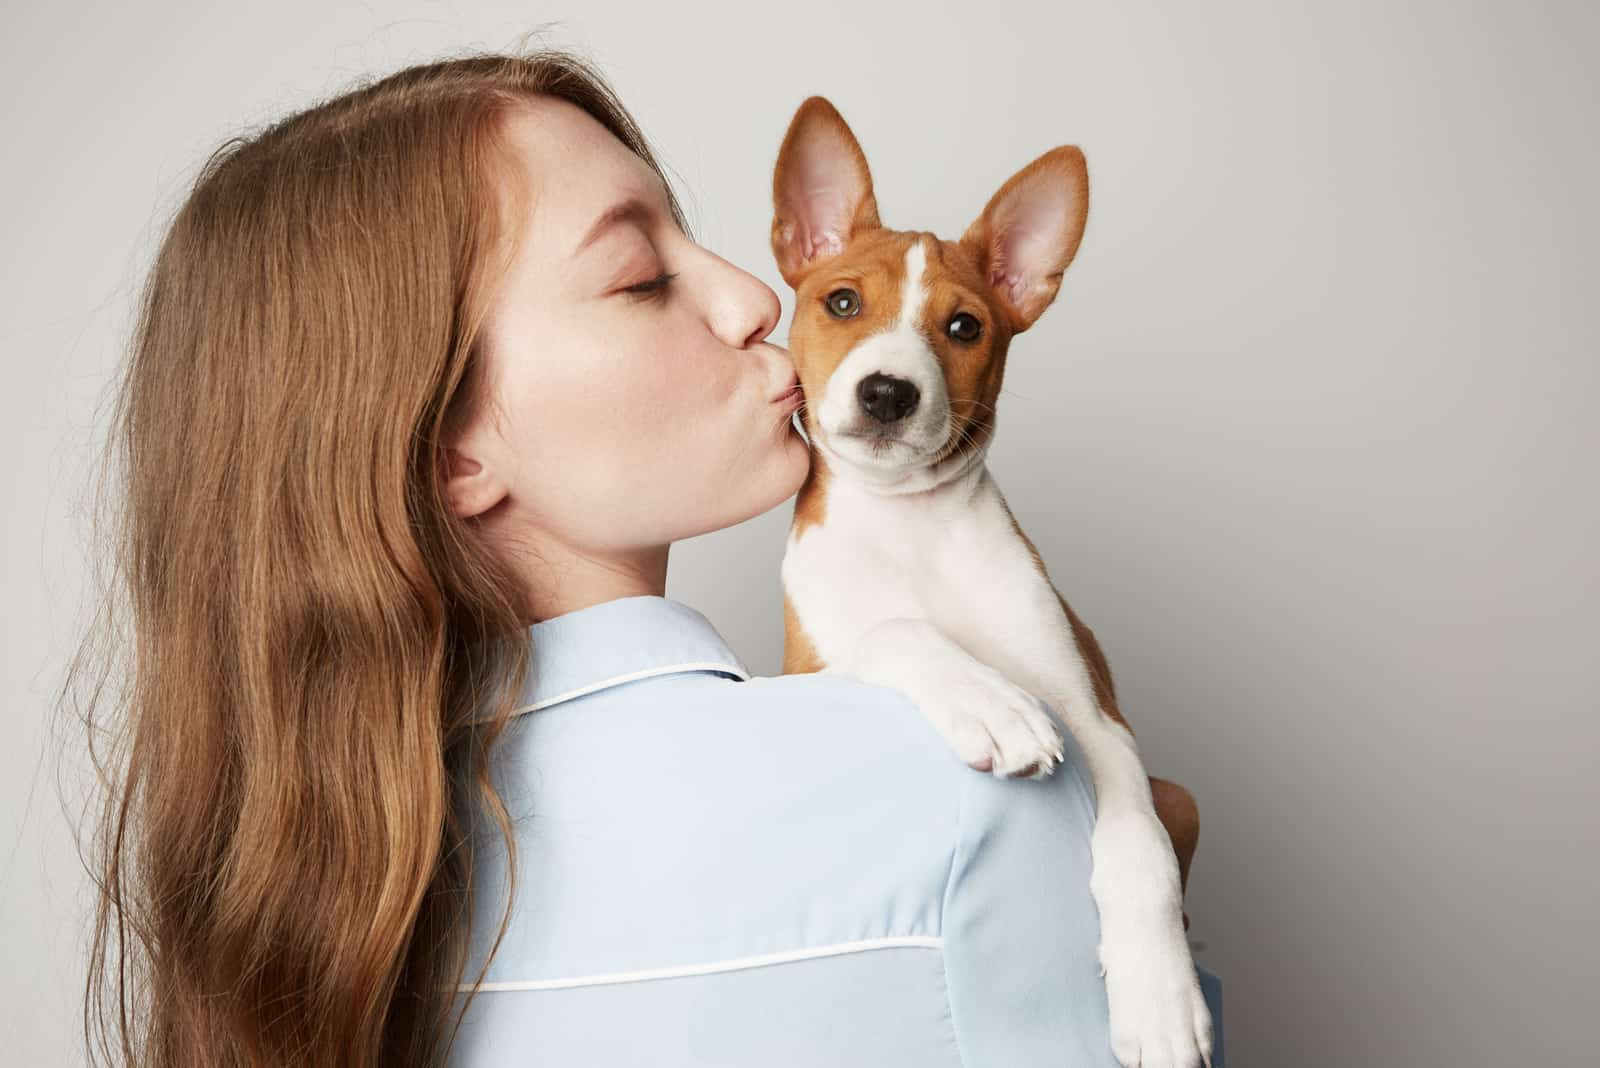 young woman hugging and kissing her puppy